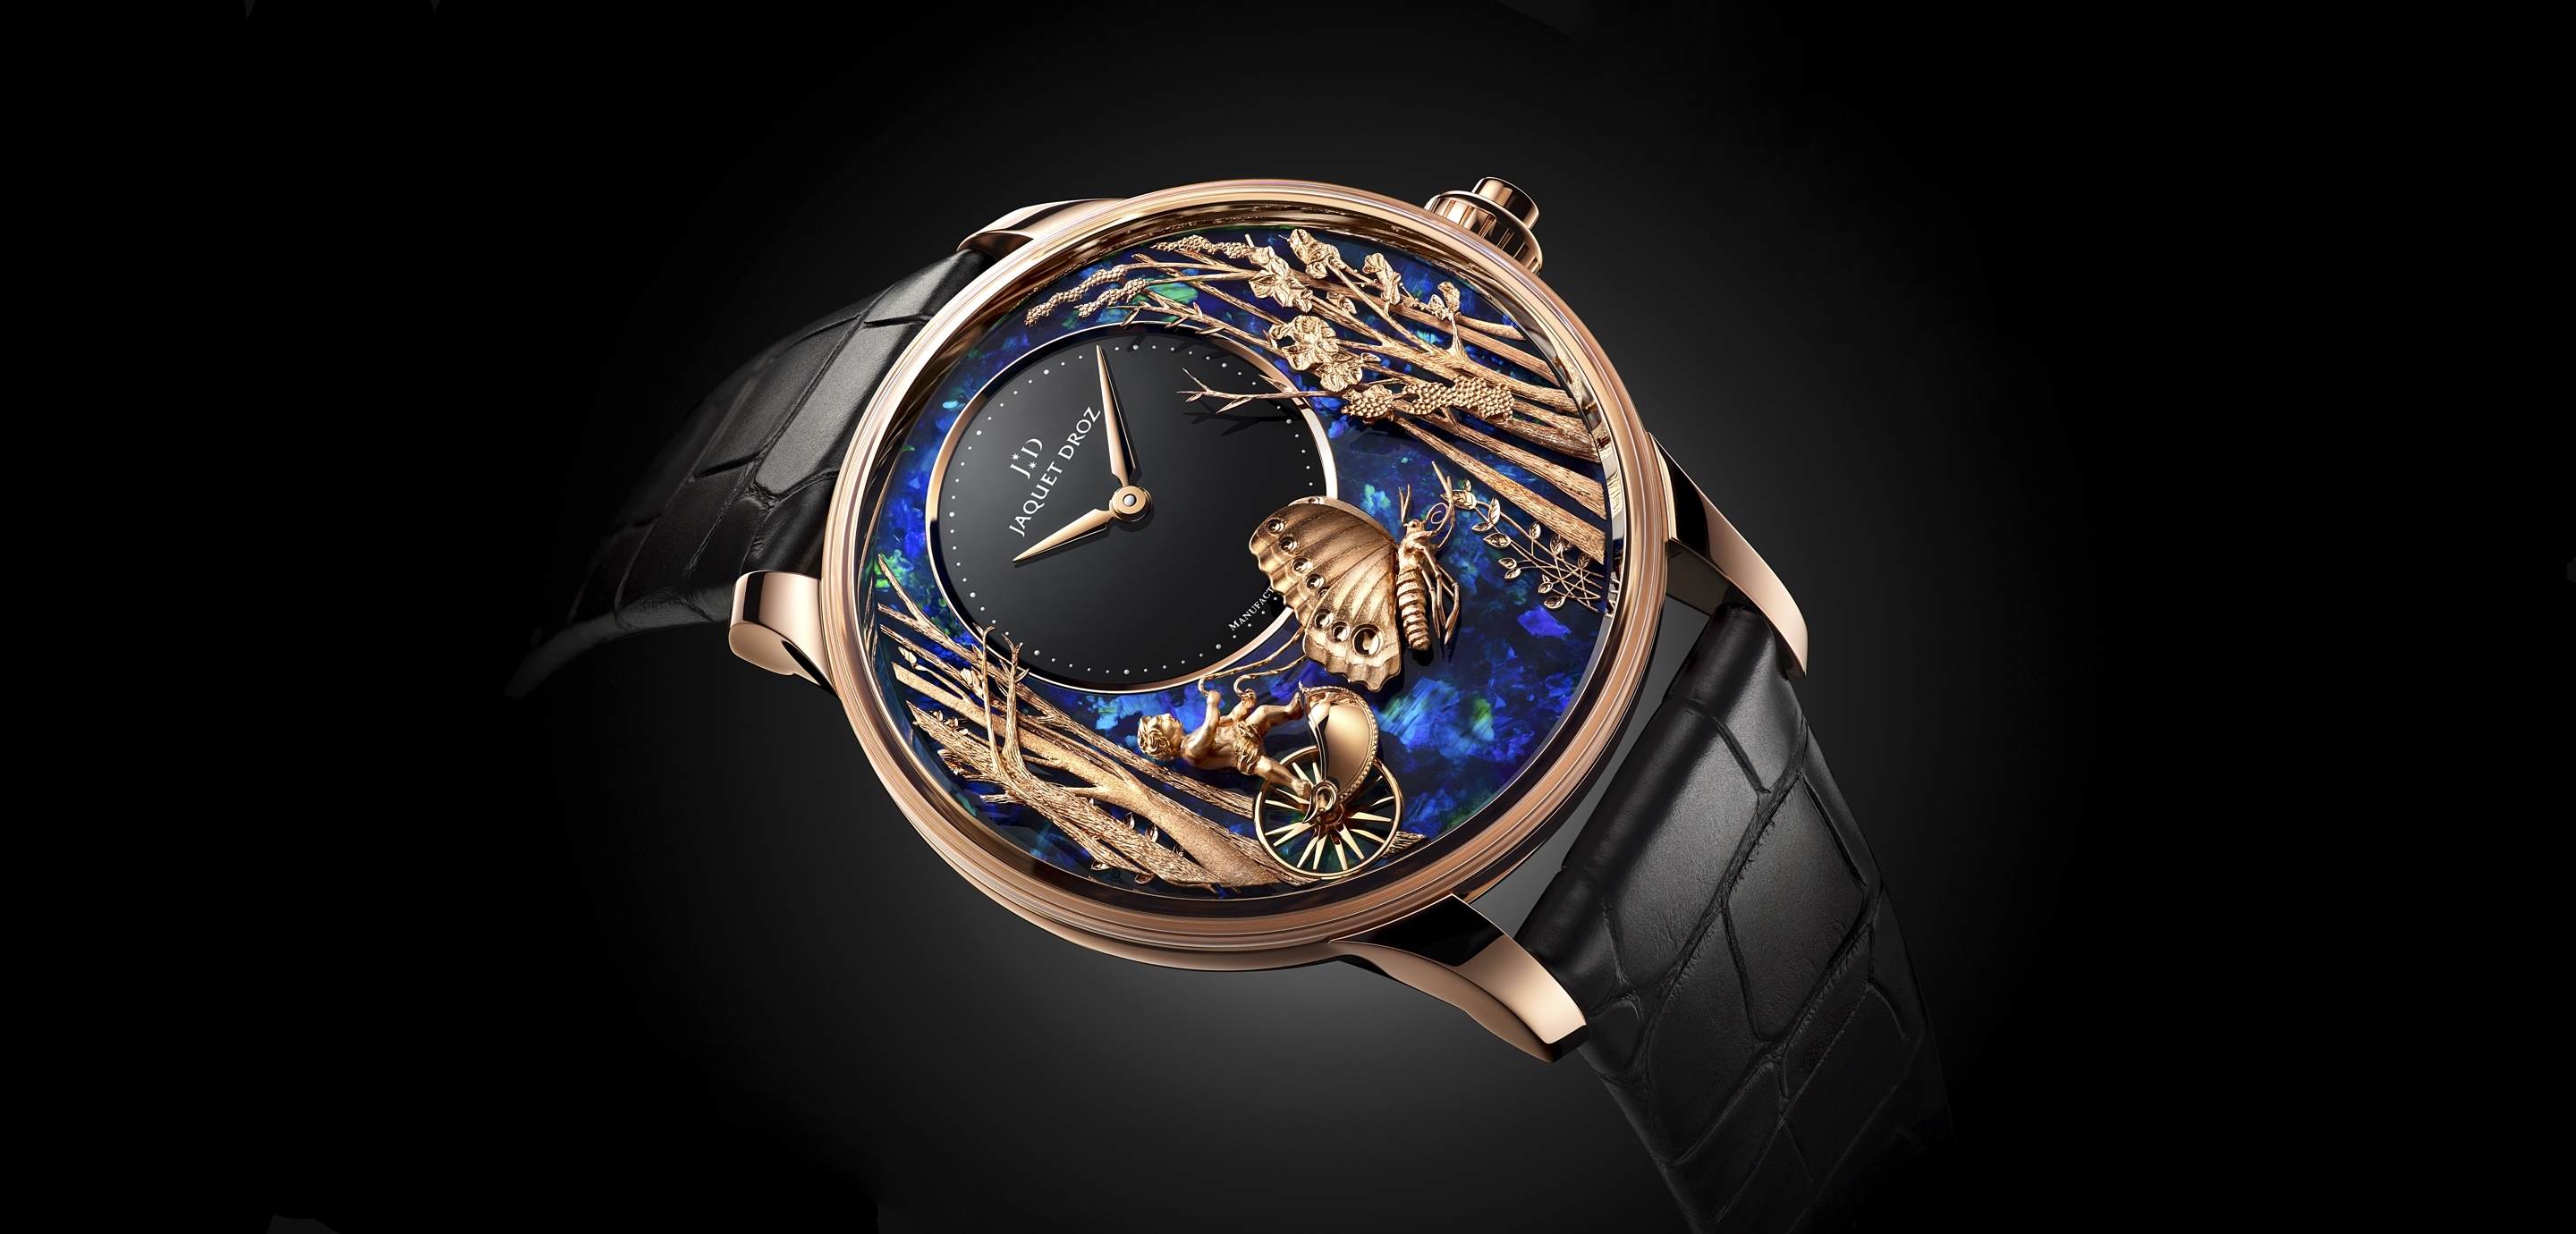 Jaquet Droz Loving Butterfly Automaton - cover 2